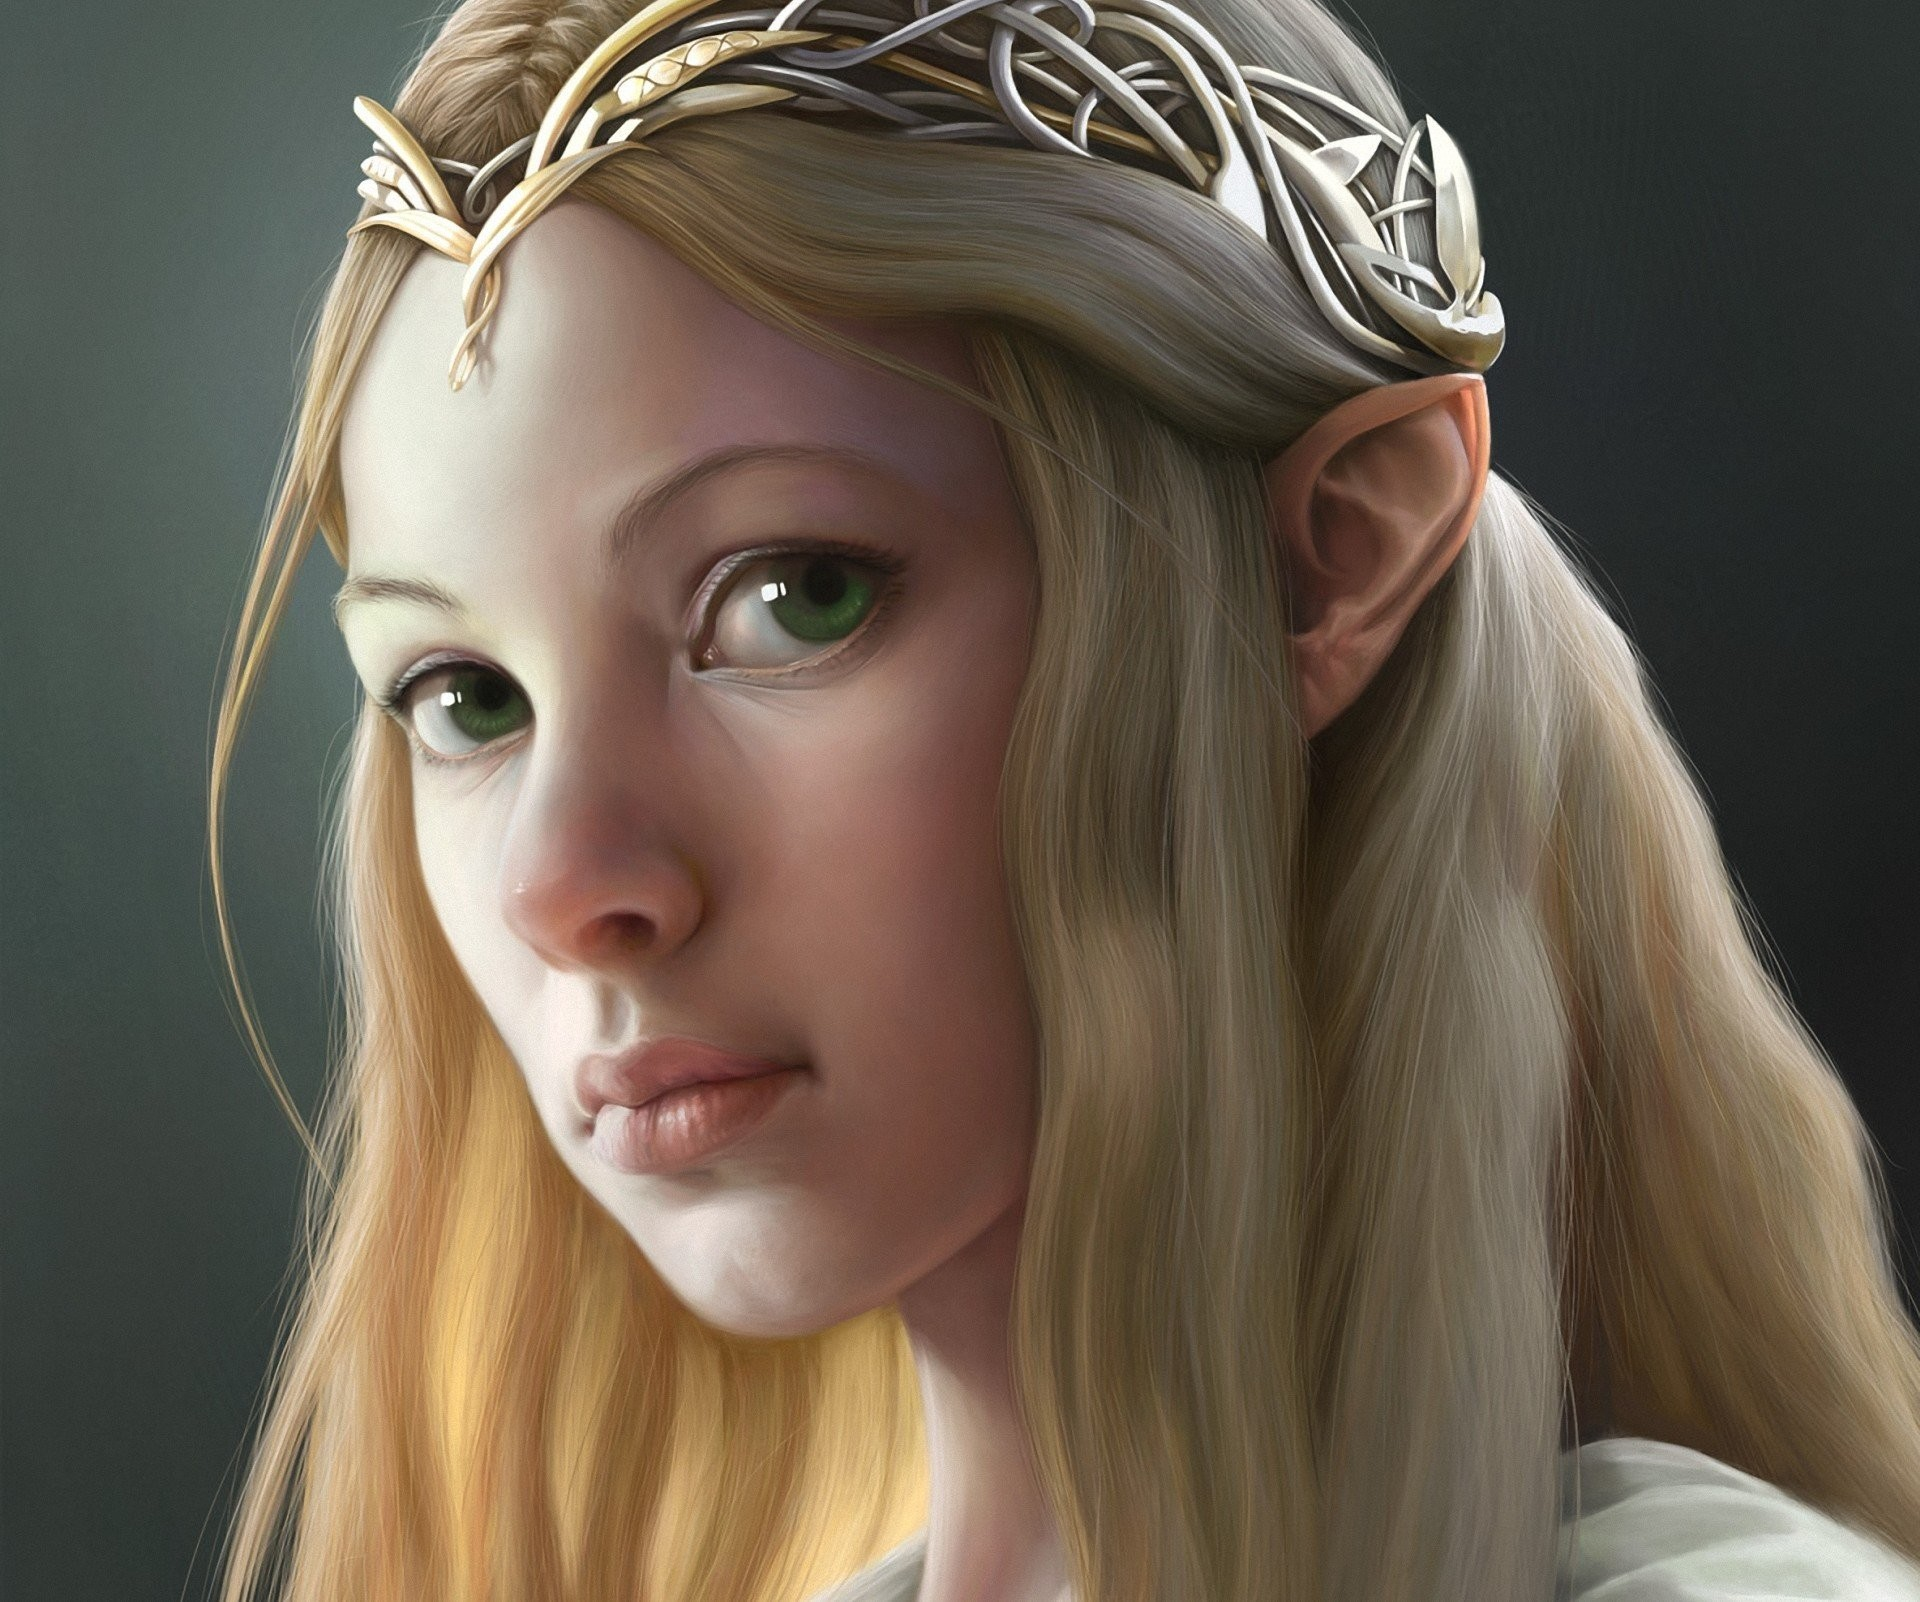 Art drawing lord of the rings movie elf wallpaper     525095    WallpaperUP